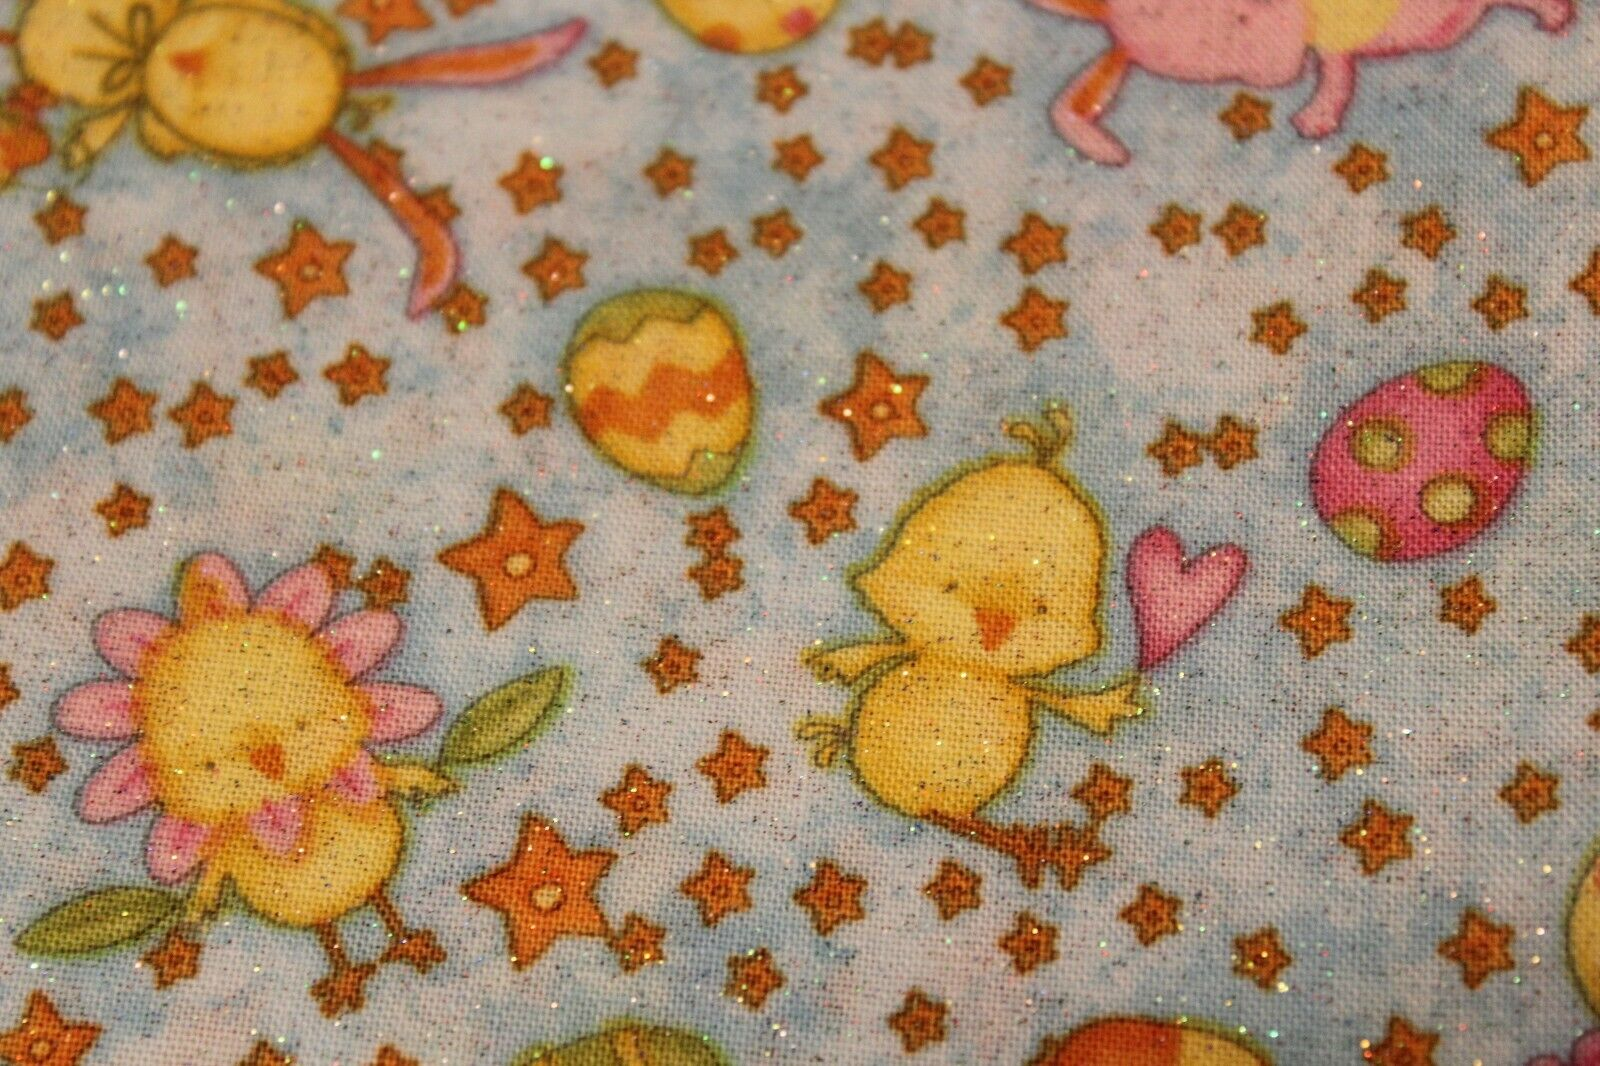 Sewing Fabric Quilt Cotton 44 X 1/2 Yd Easter Eggs Bunny Duckling Sparkle Blue - $6.99